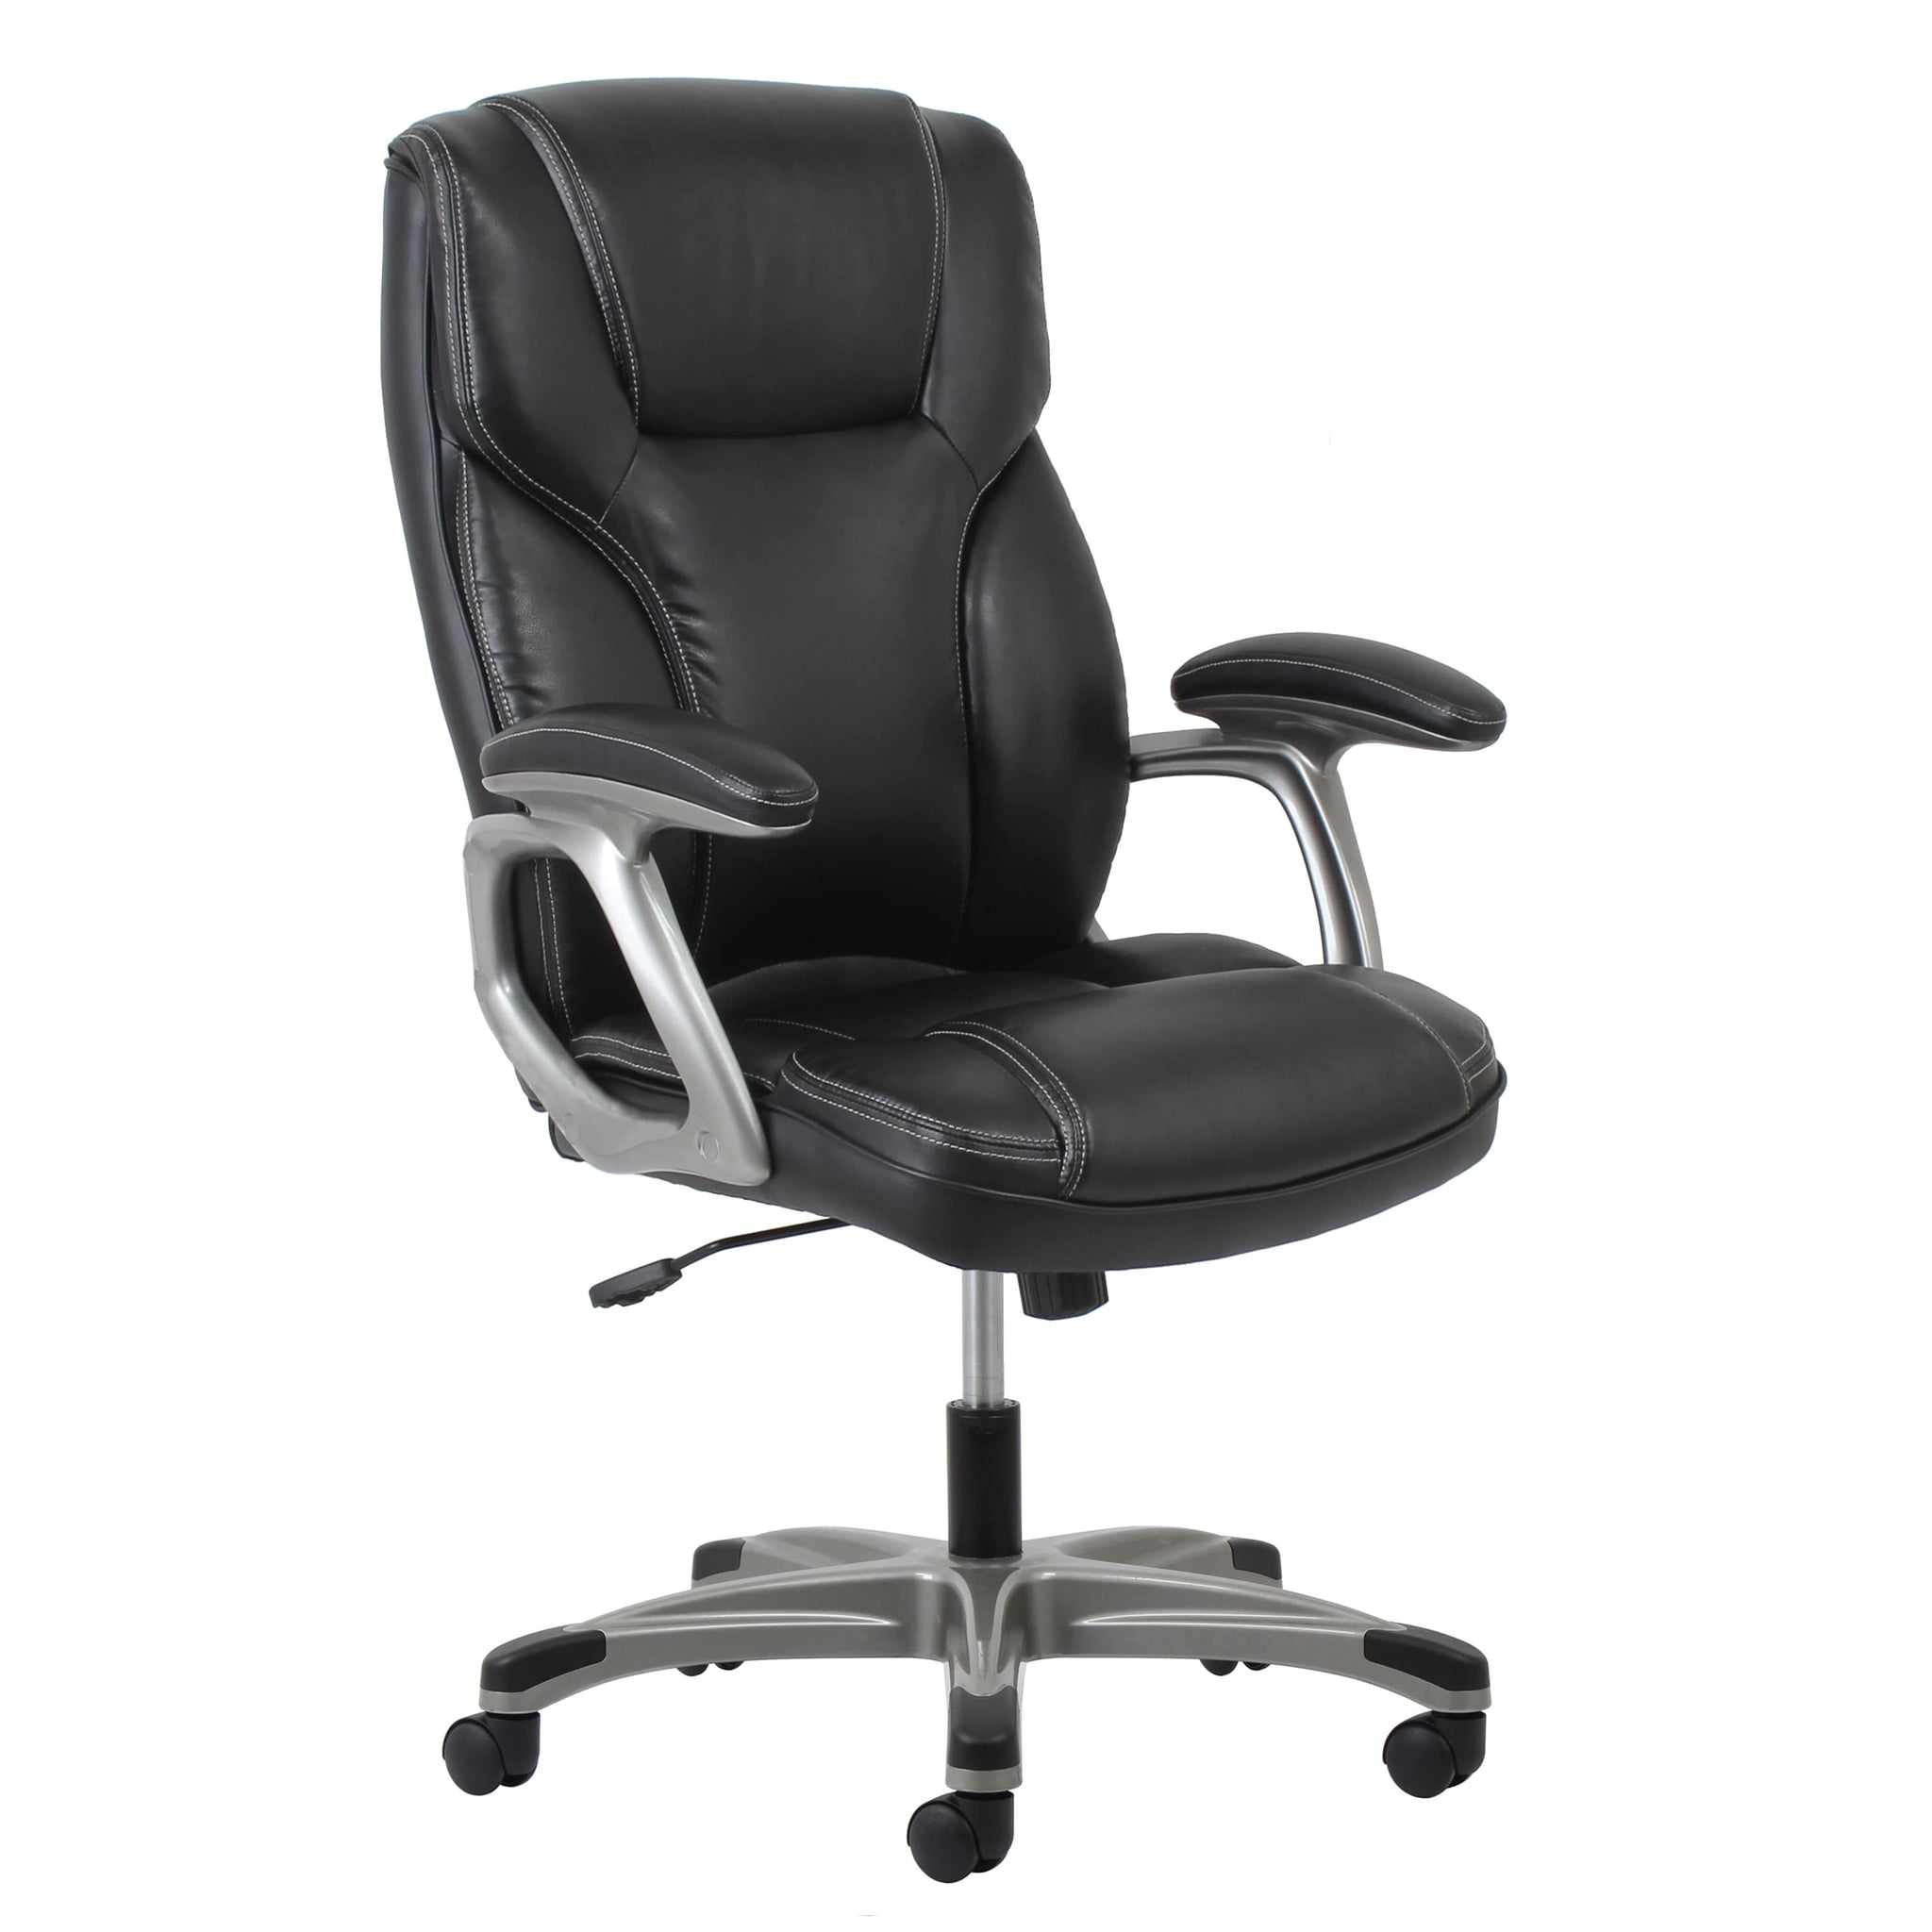 Leather Office Chair with Lumbar Support  sc 1 st  Handy & Leather Office Chair with Lumbar Support | Handy